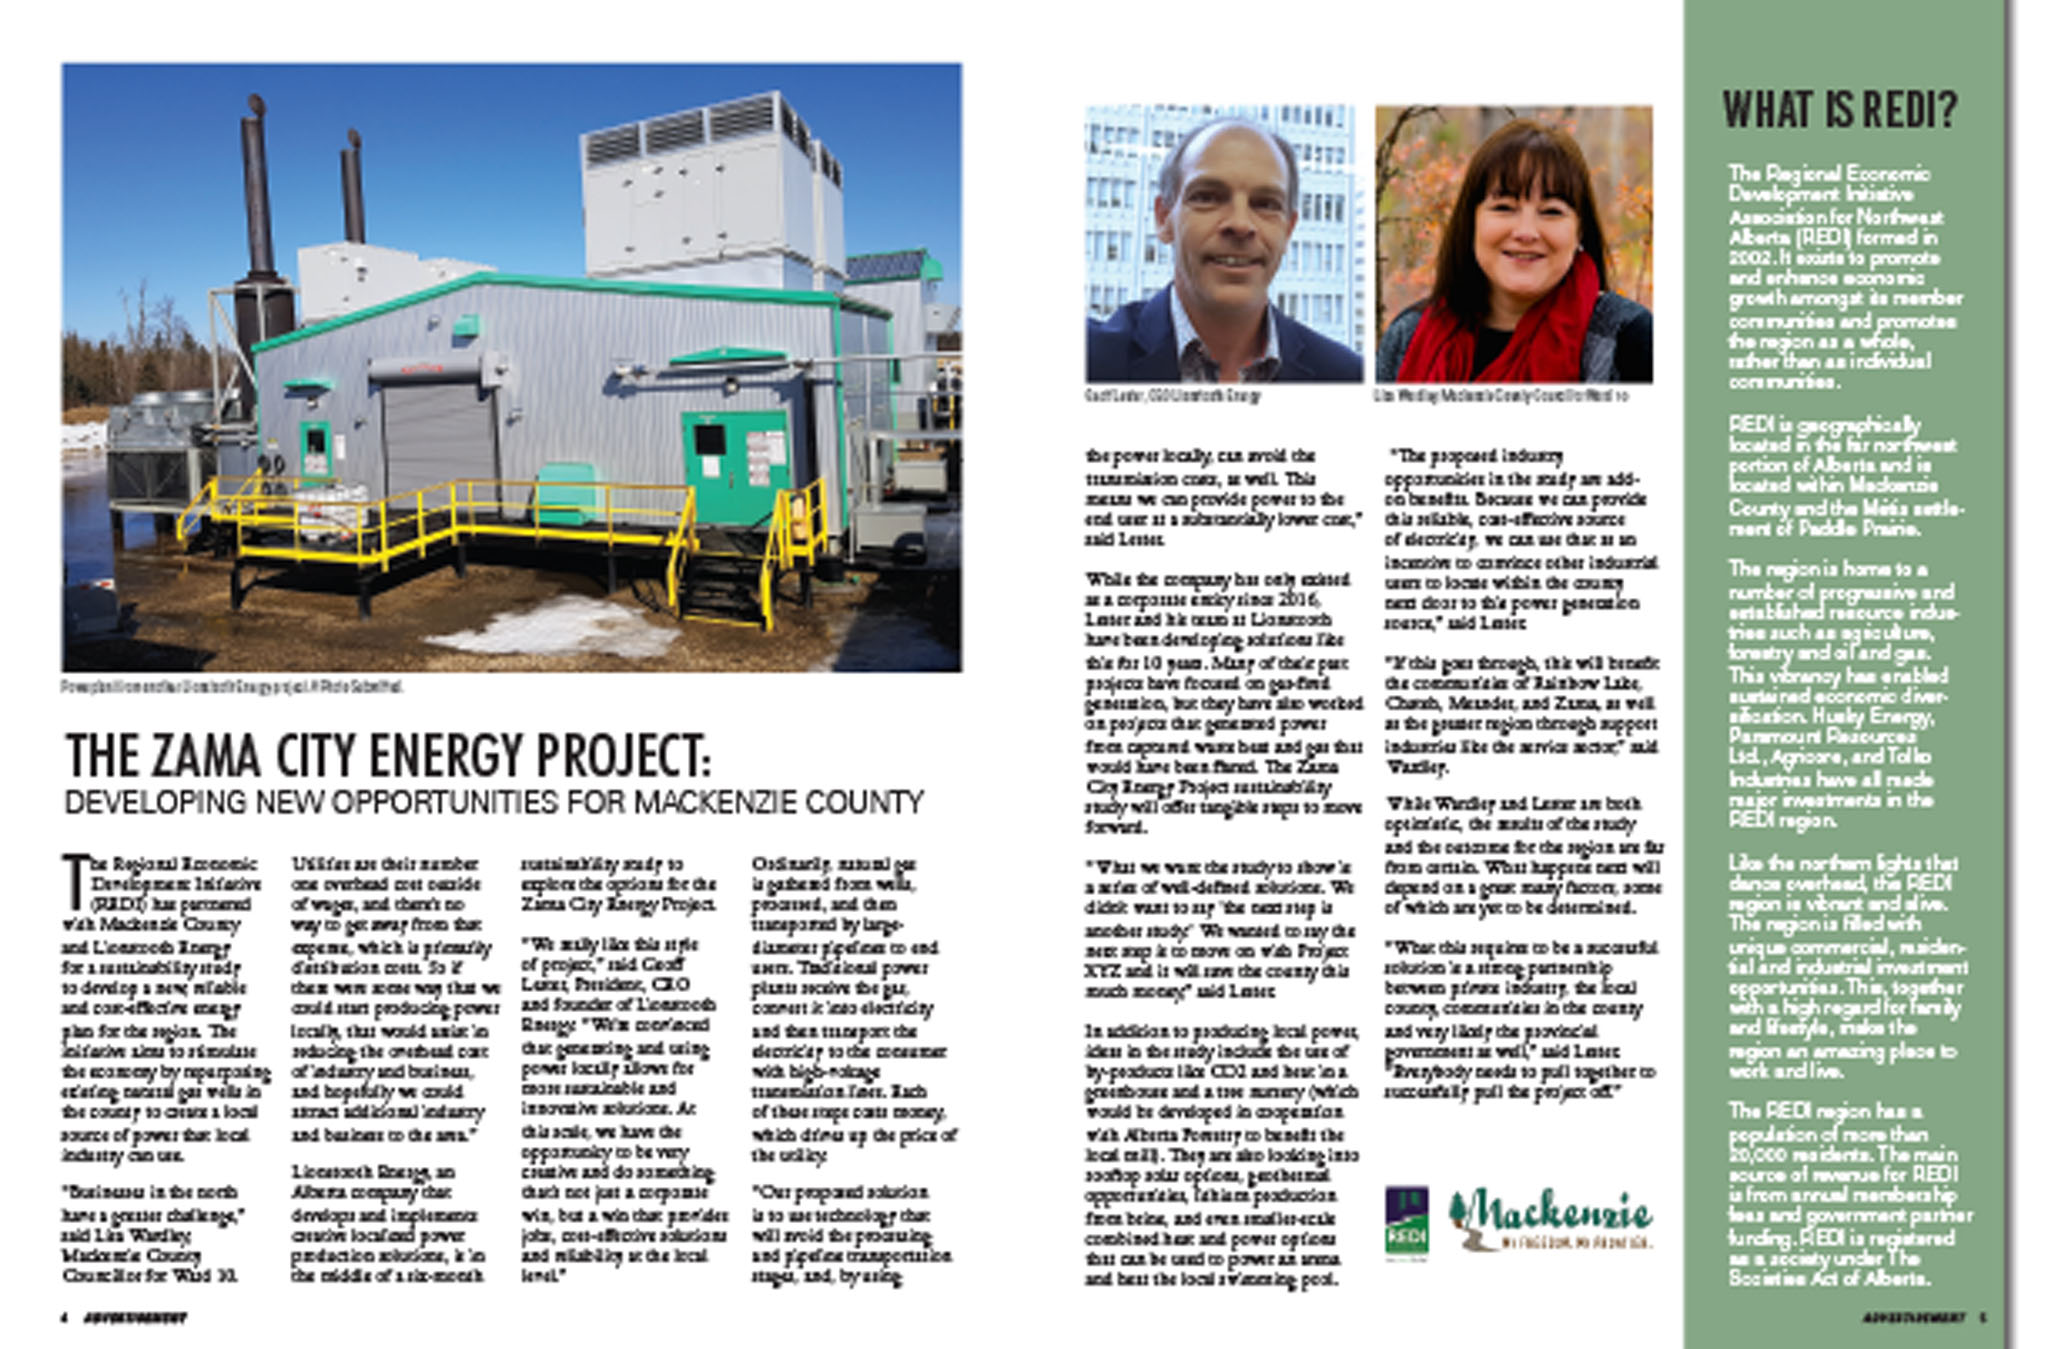 August 2019 - The Zama City Energy Project